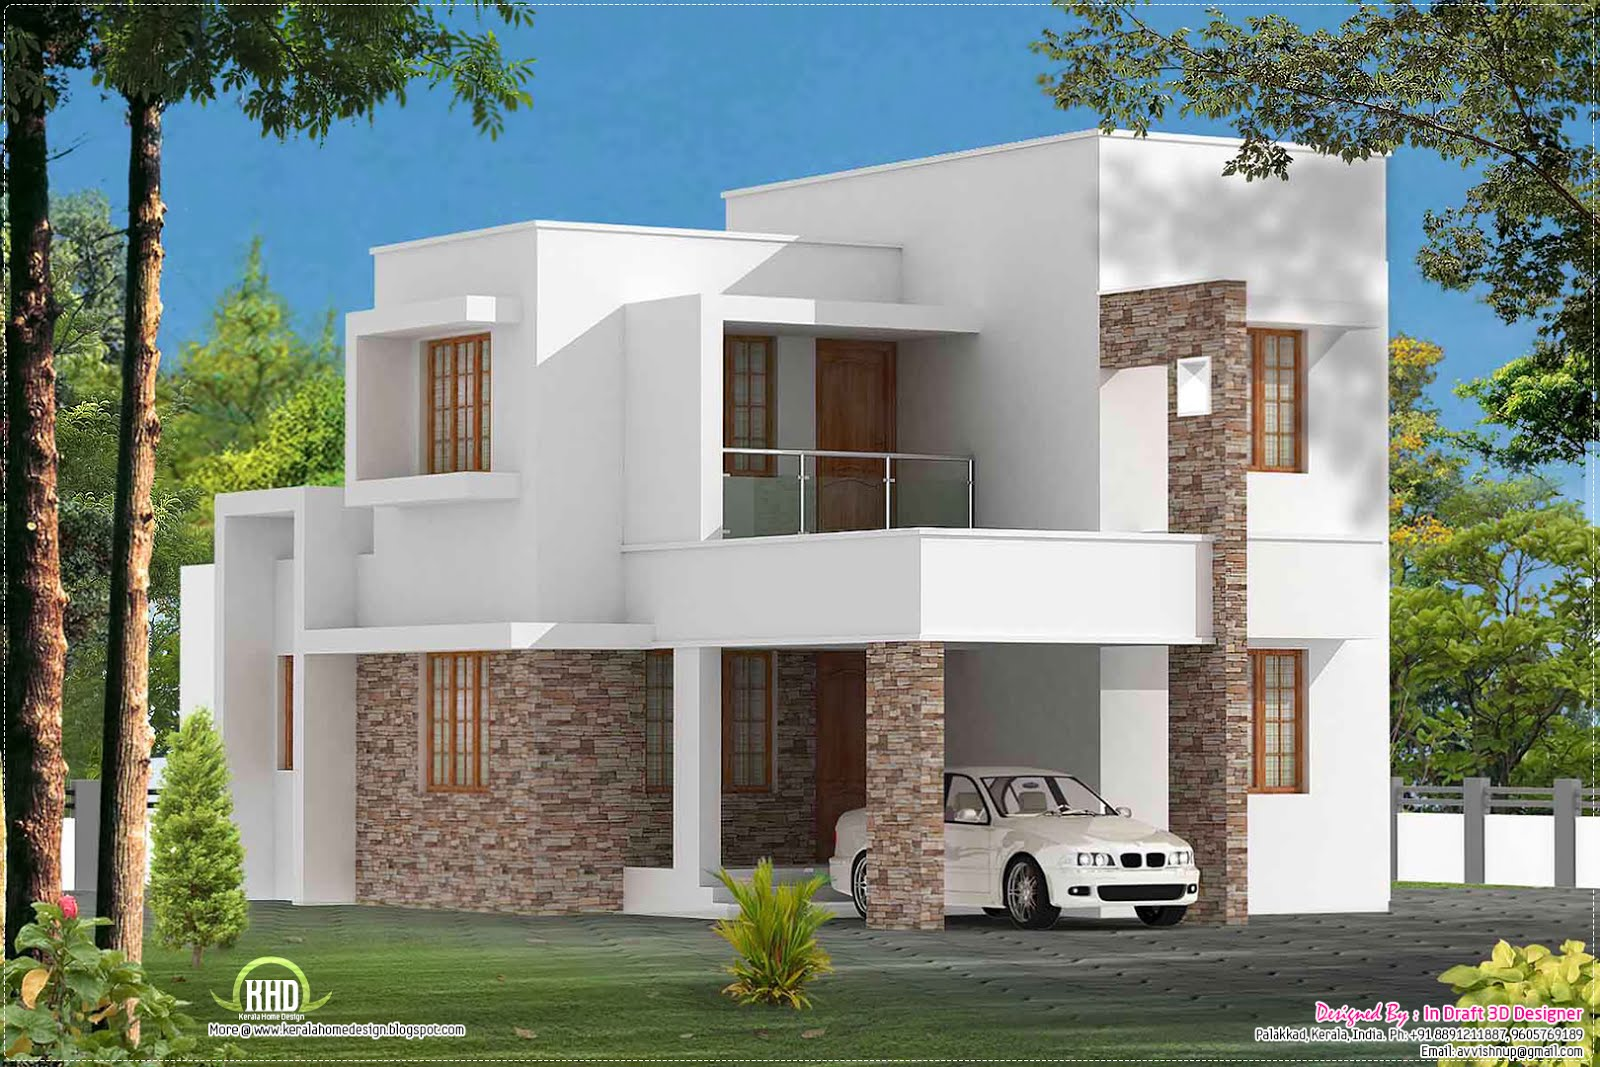 Simple 3 bed room contemporary villa kerala home design and floor plans - D home designer ...